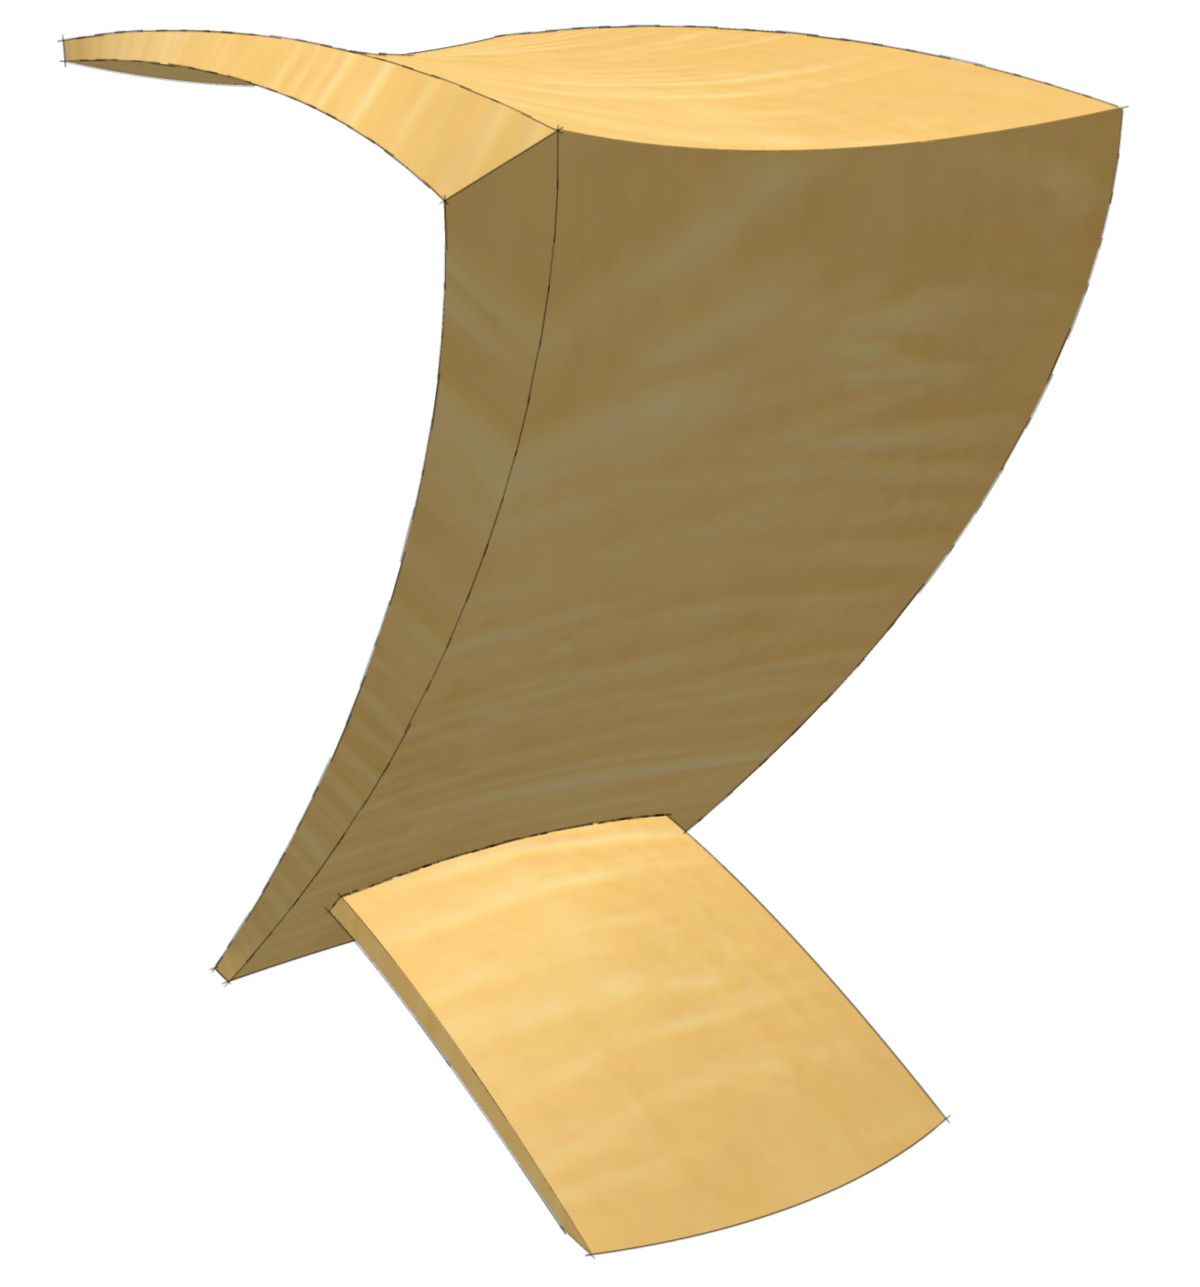 Curved Surfaces in SketchUp - FineWoodworking